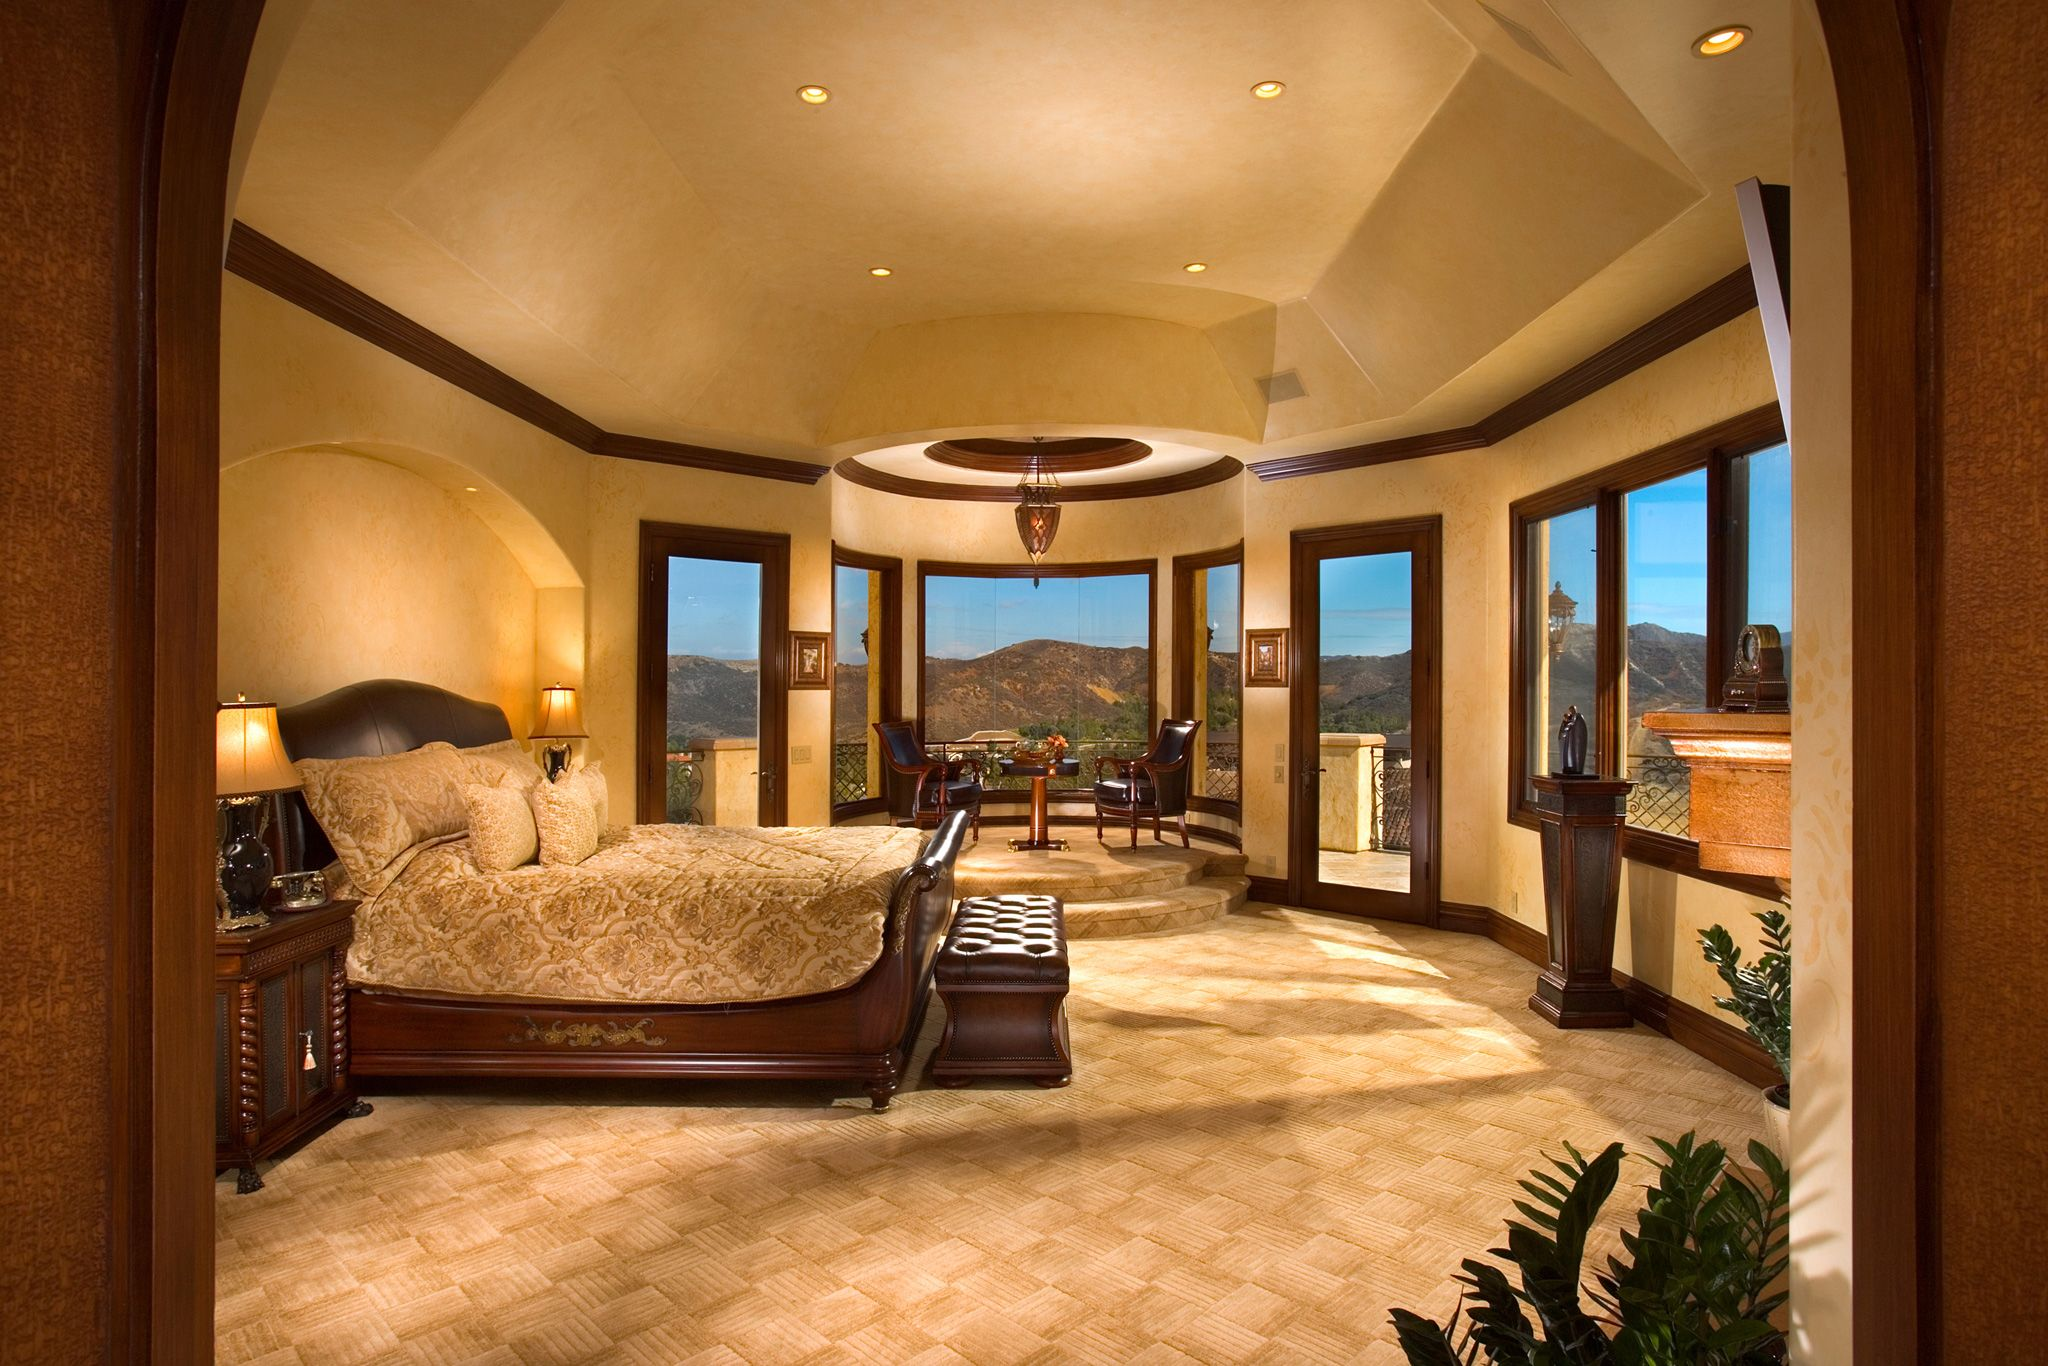 21 Incredible Master Bedrooms Design Ideas Luxury Master